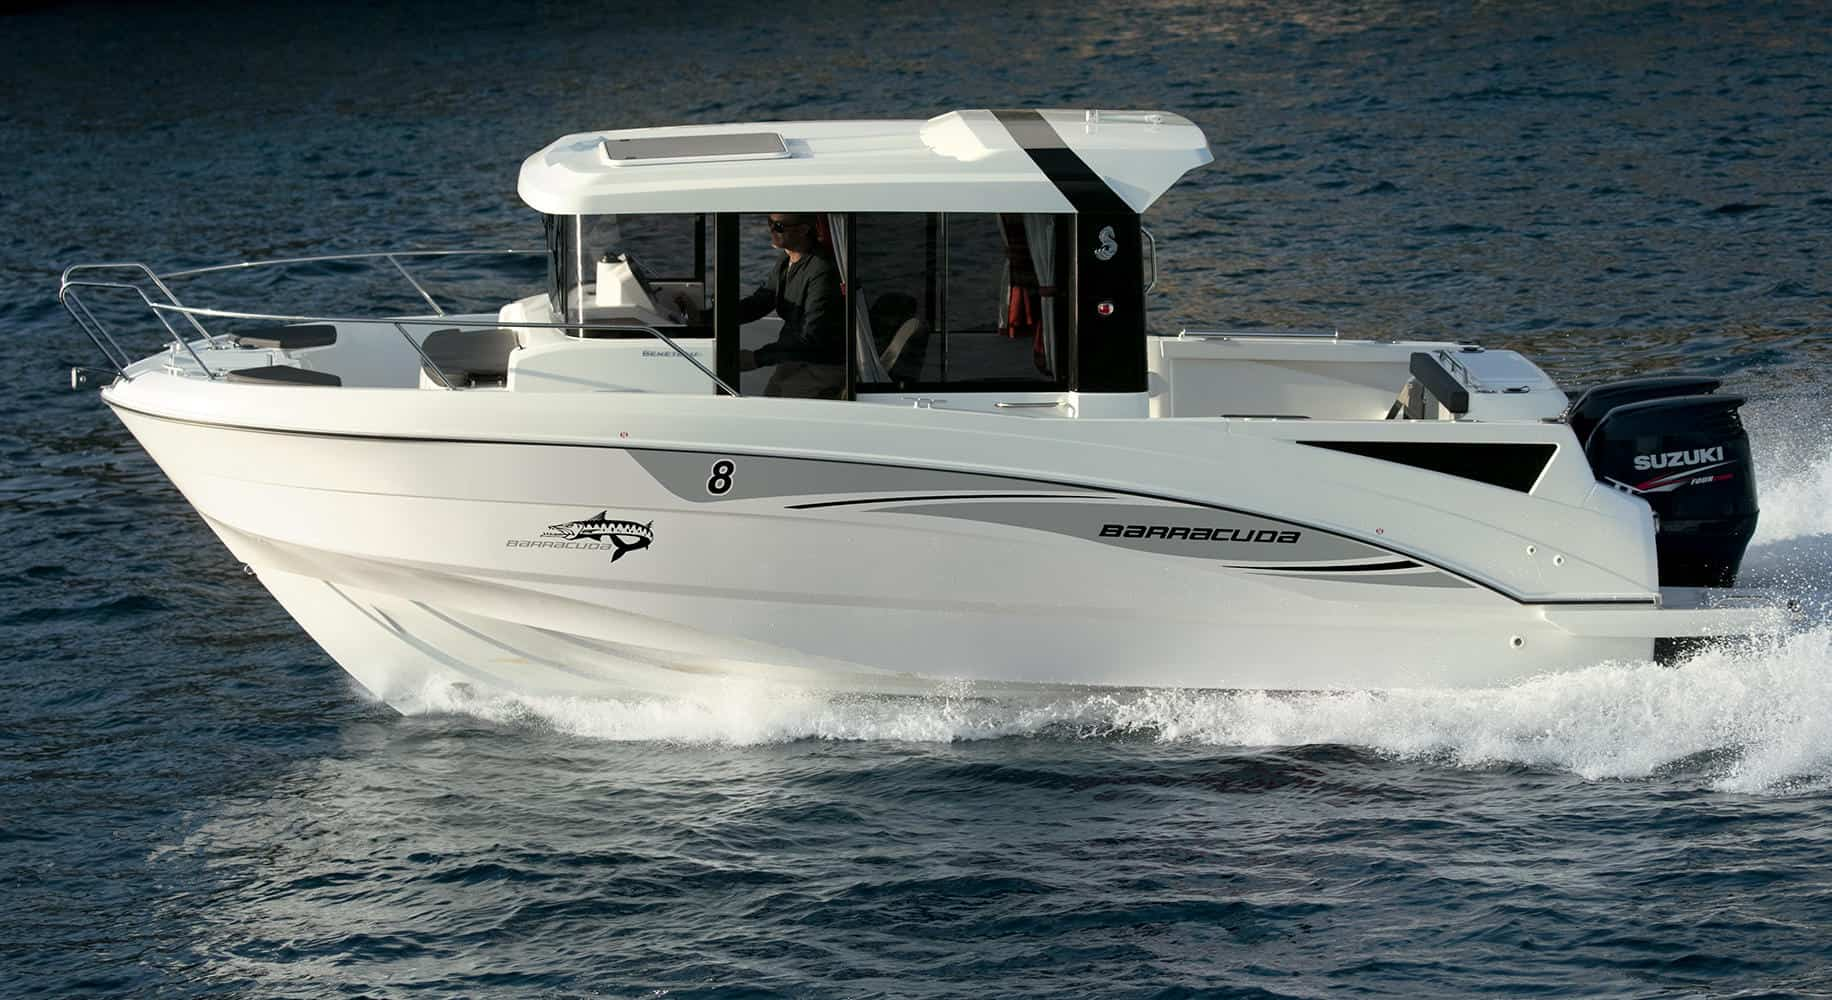 Barracuda 8